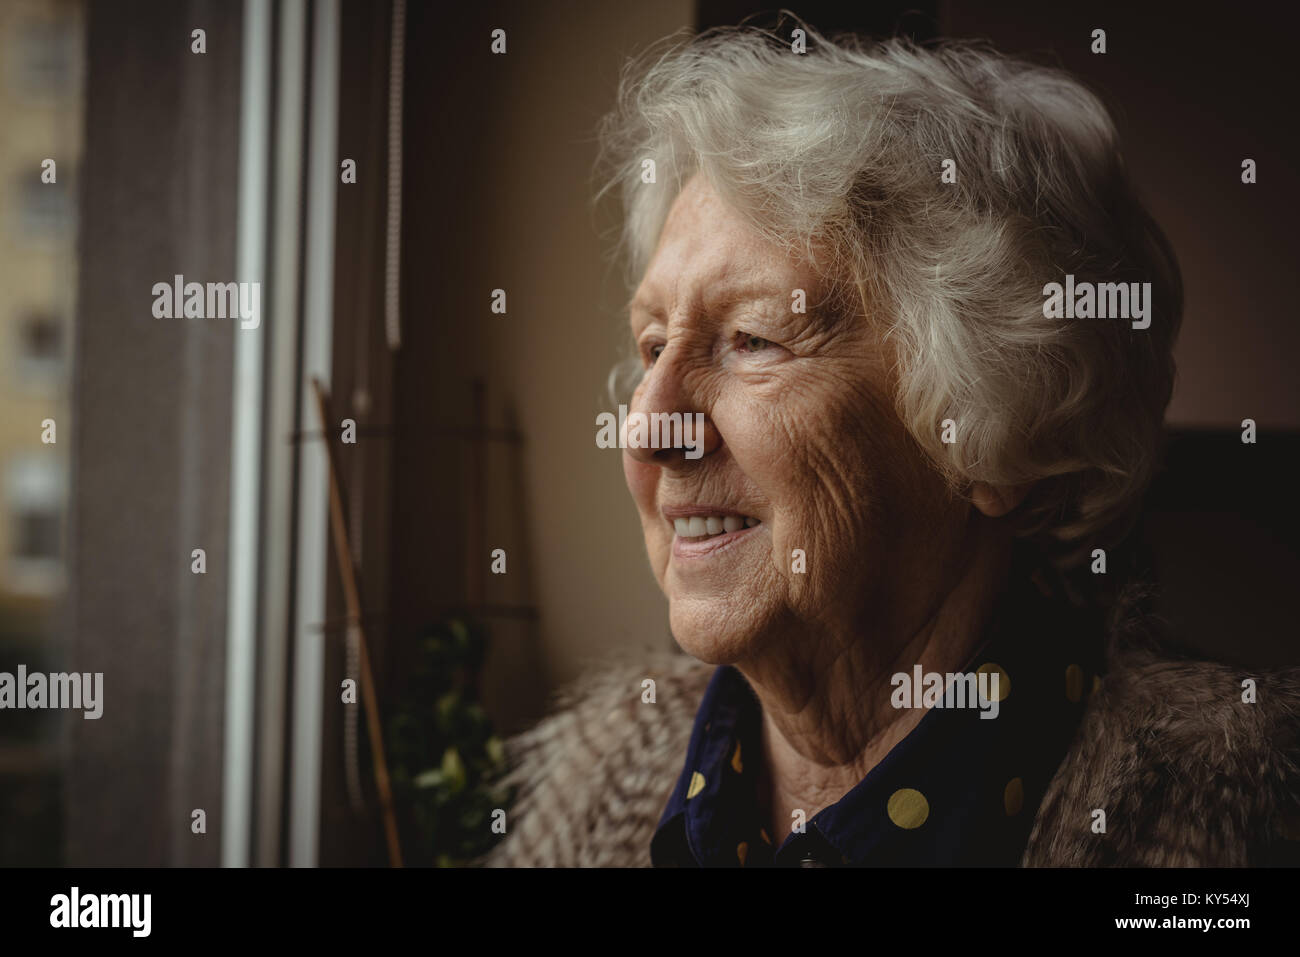 Smiling senior woman looking out of the window - Stock Image